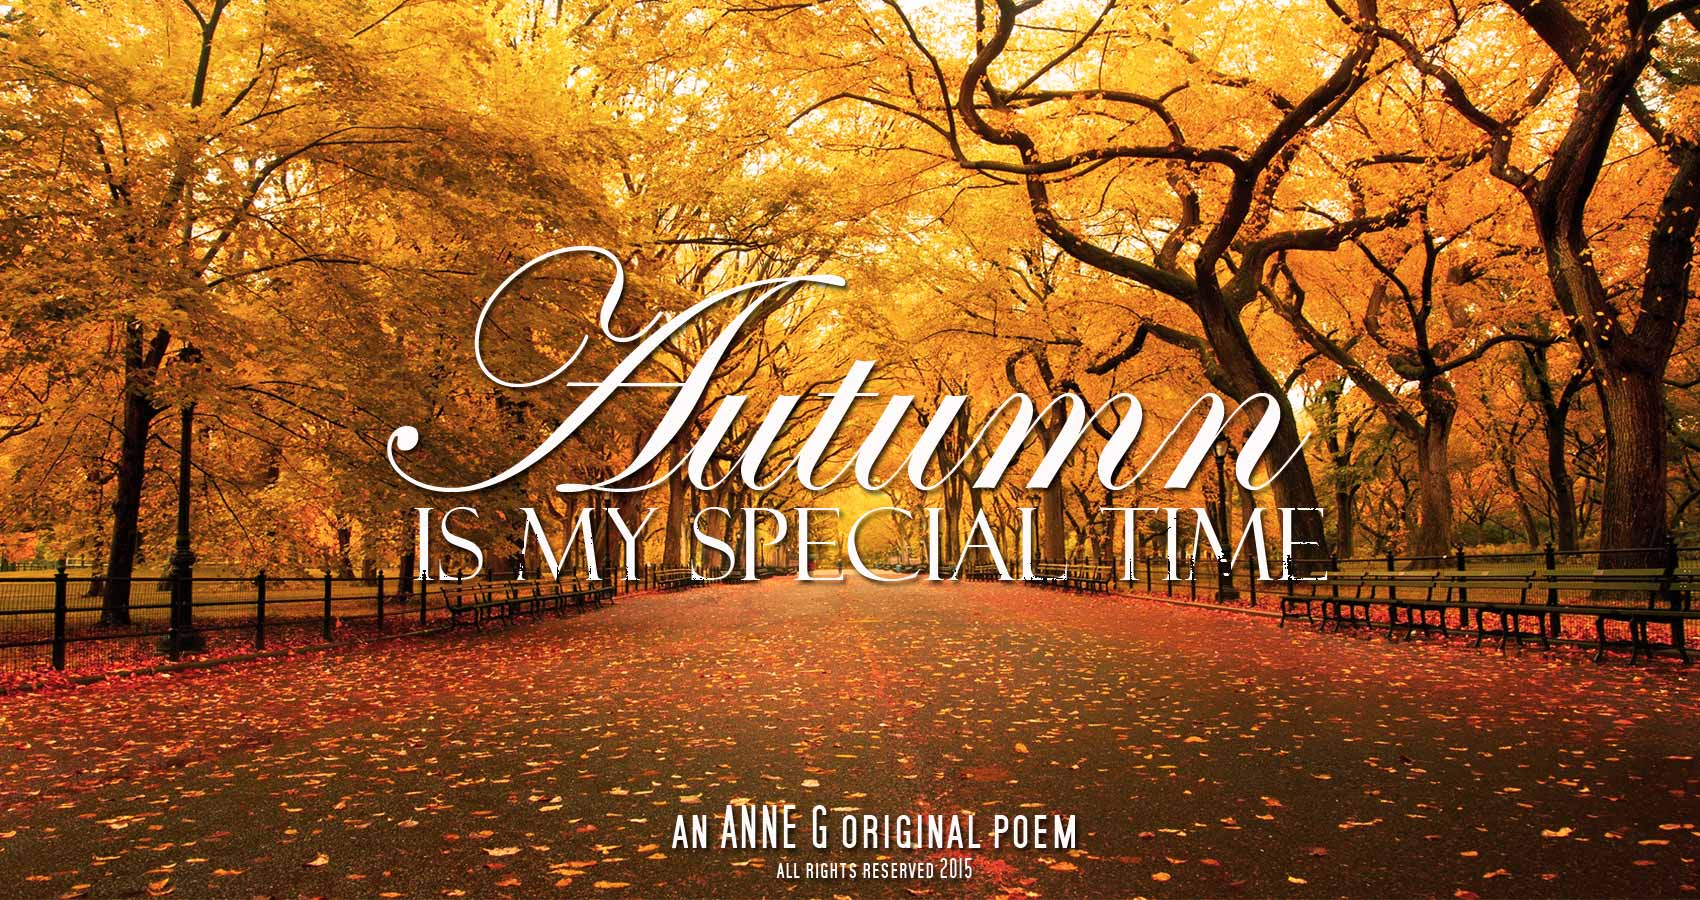 Autumn Is My Special Time by Anne G at spillwords.com